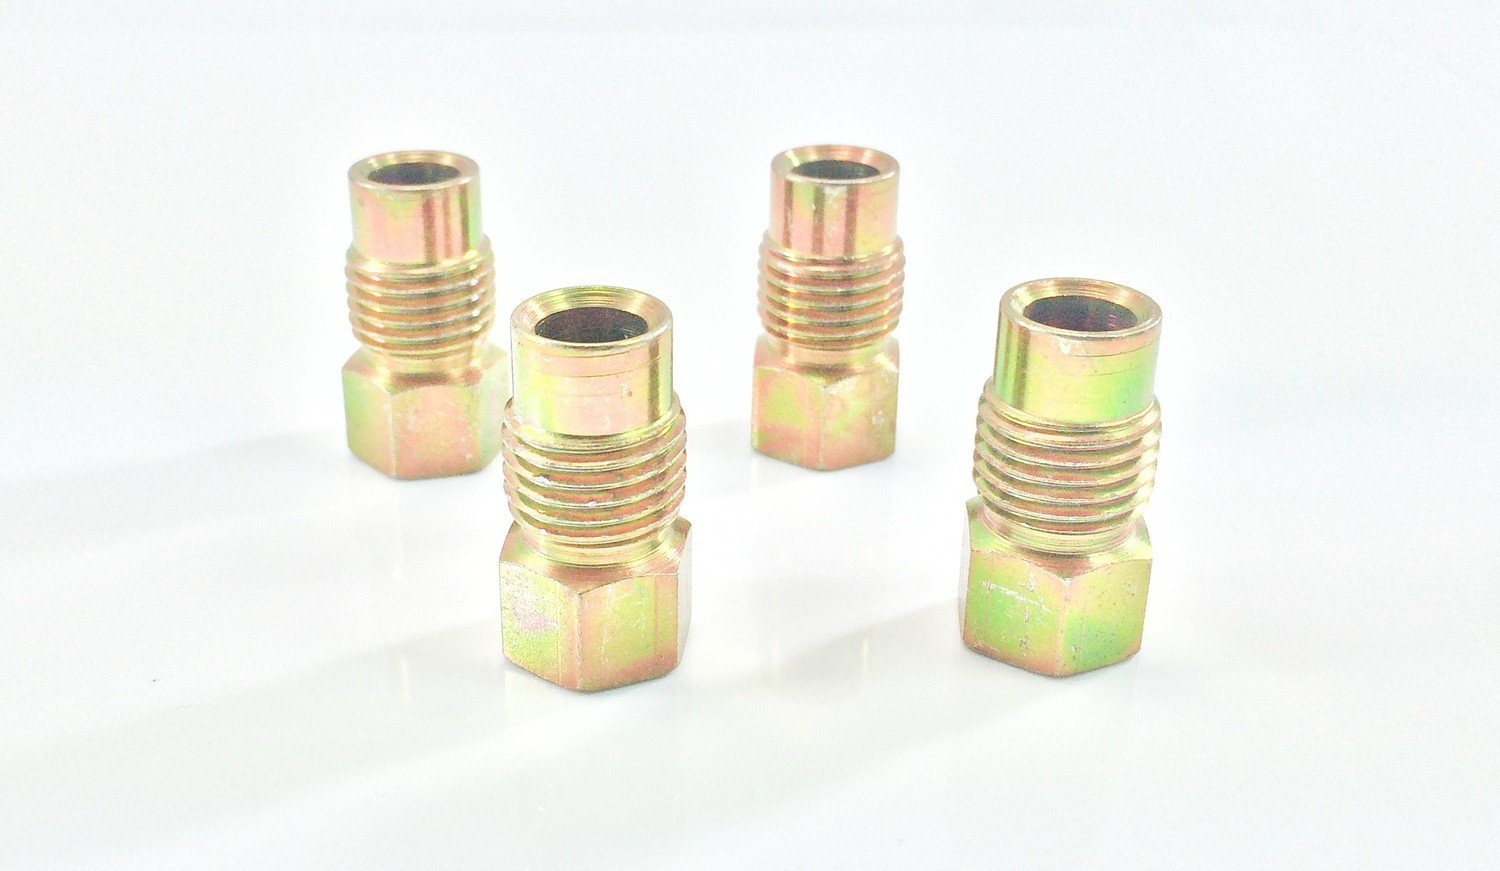 5/16' Fuel Line Tube Nut (14mm x 1.5) (Pack of 4) The Stop Shop